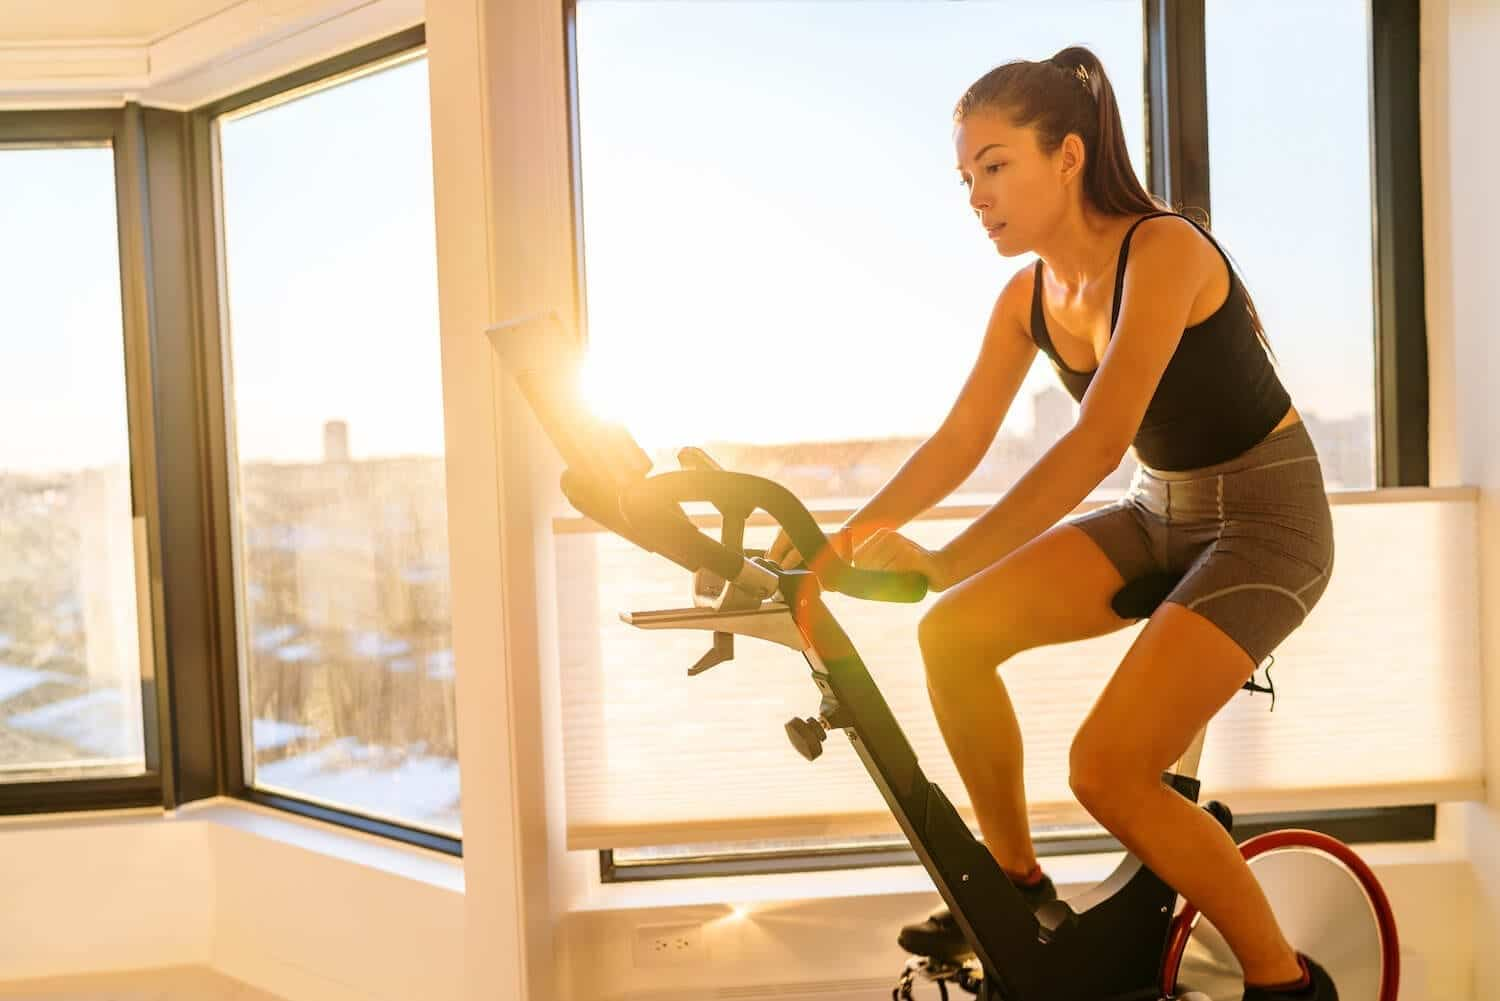 Image of woman exercising on a stationary bicycle